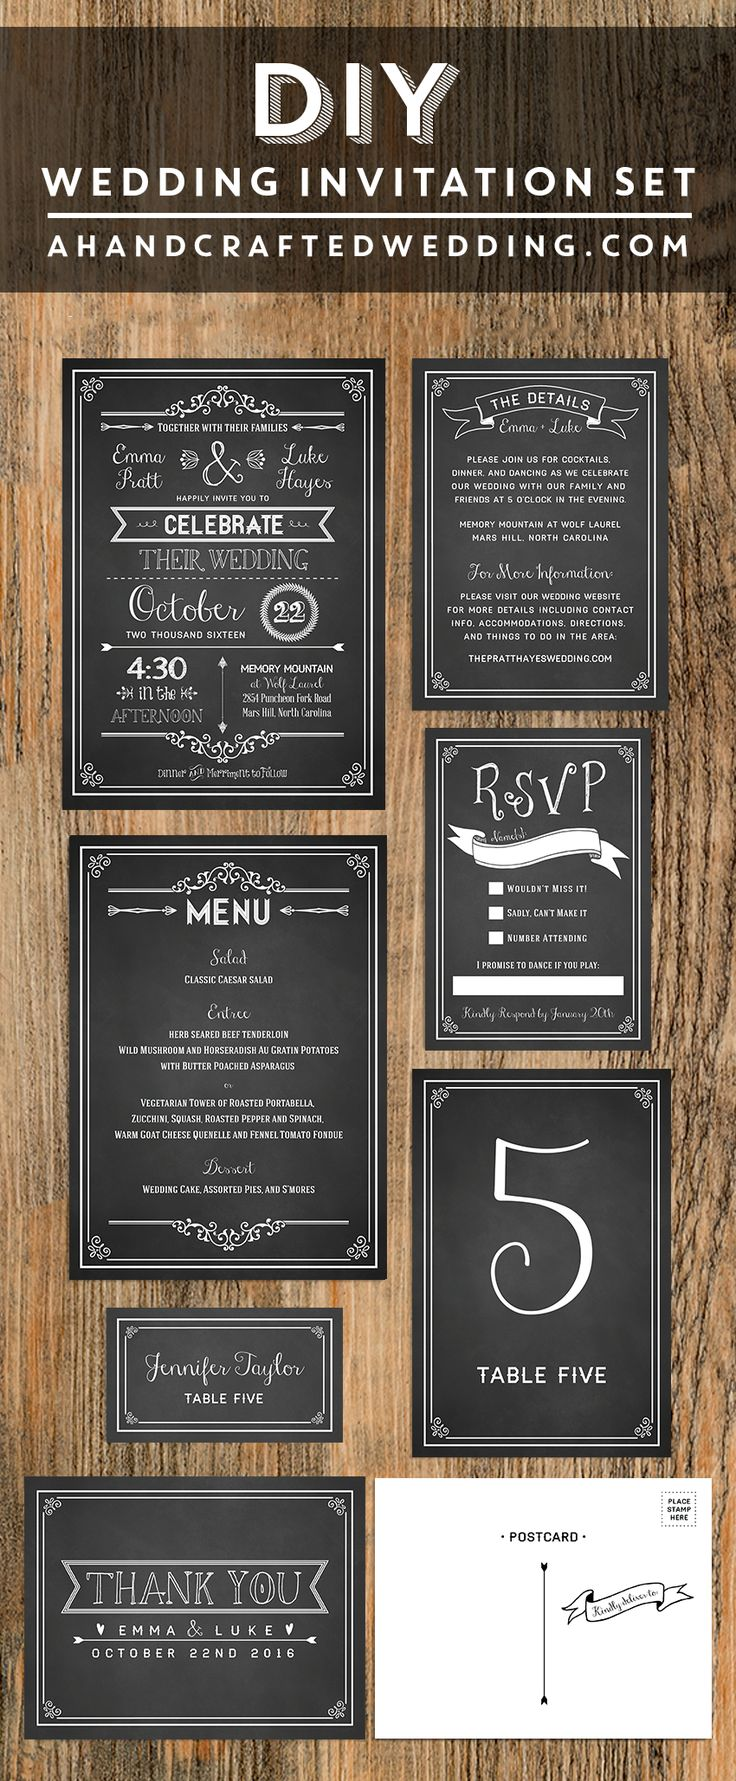 free printable0th wedding anniversary invitations%0A samplediymintweddinginvitationsetahandcraftedwedding